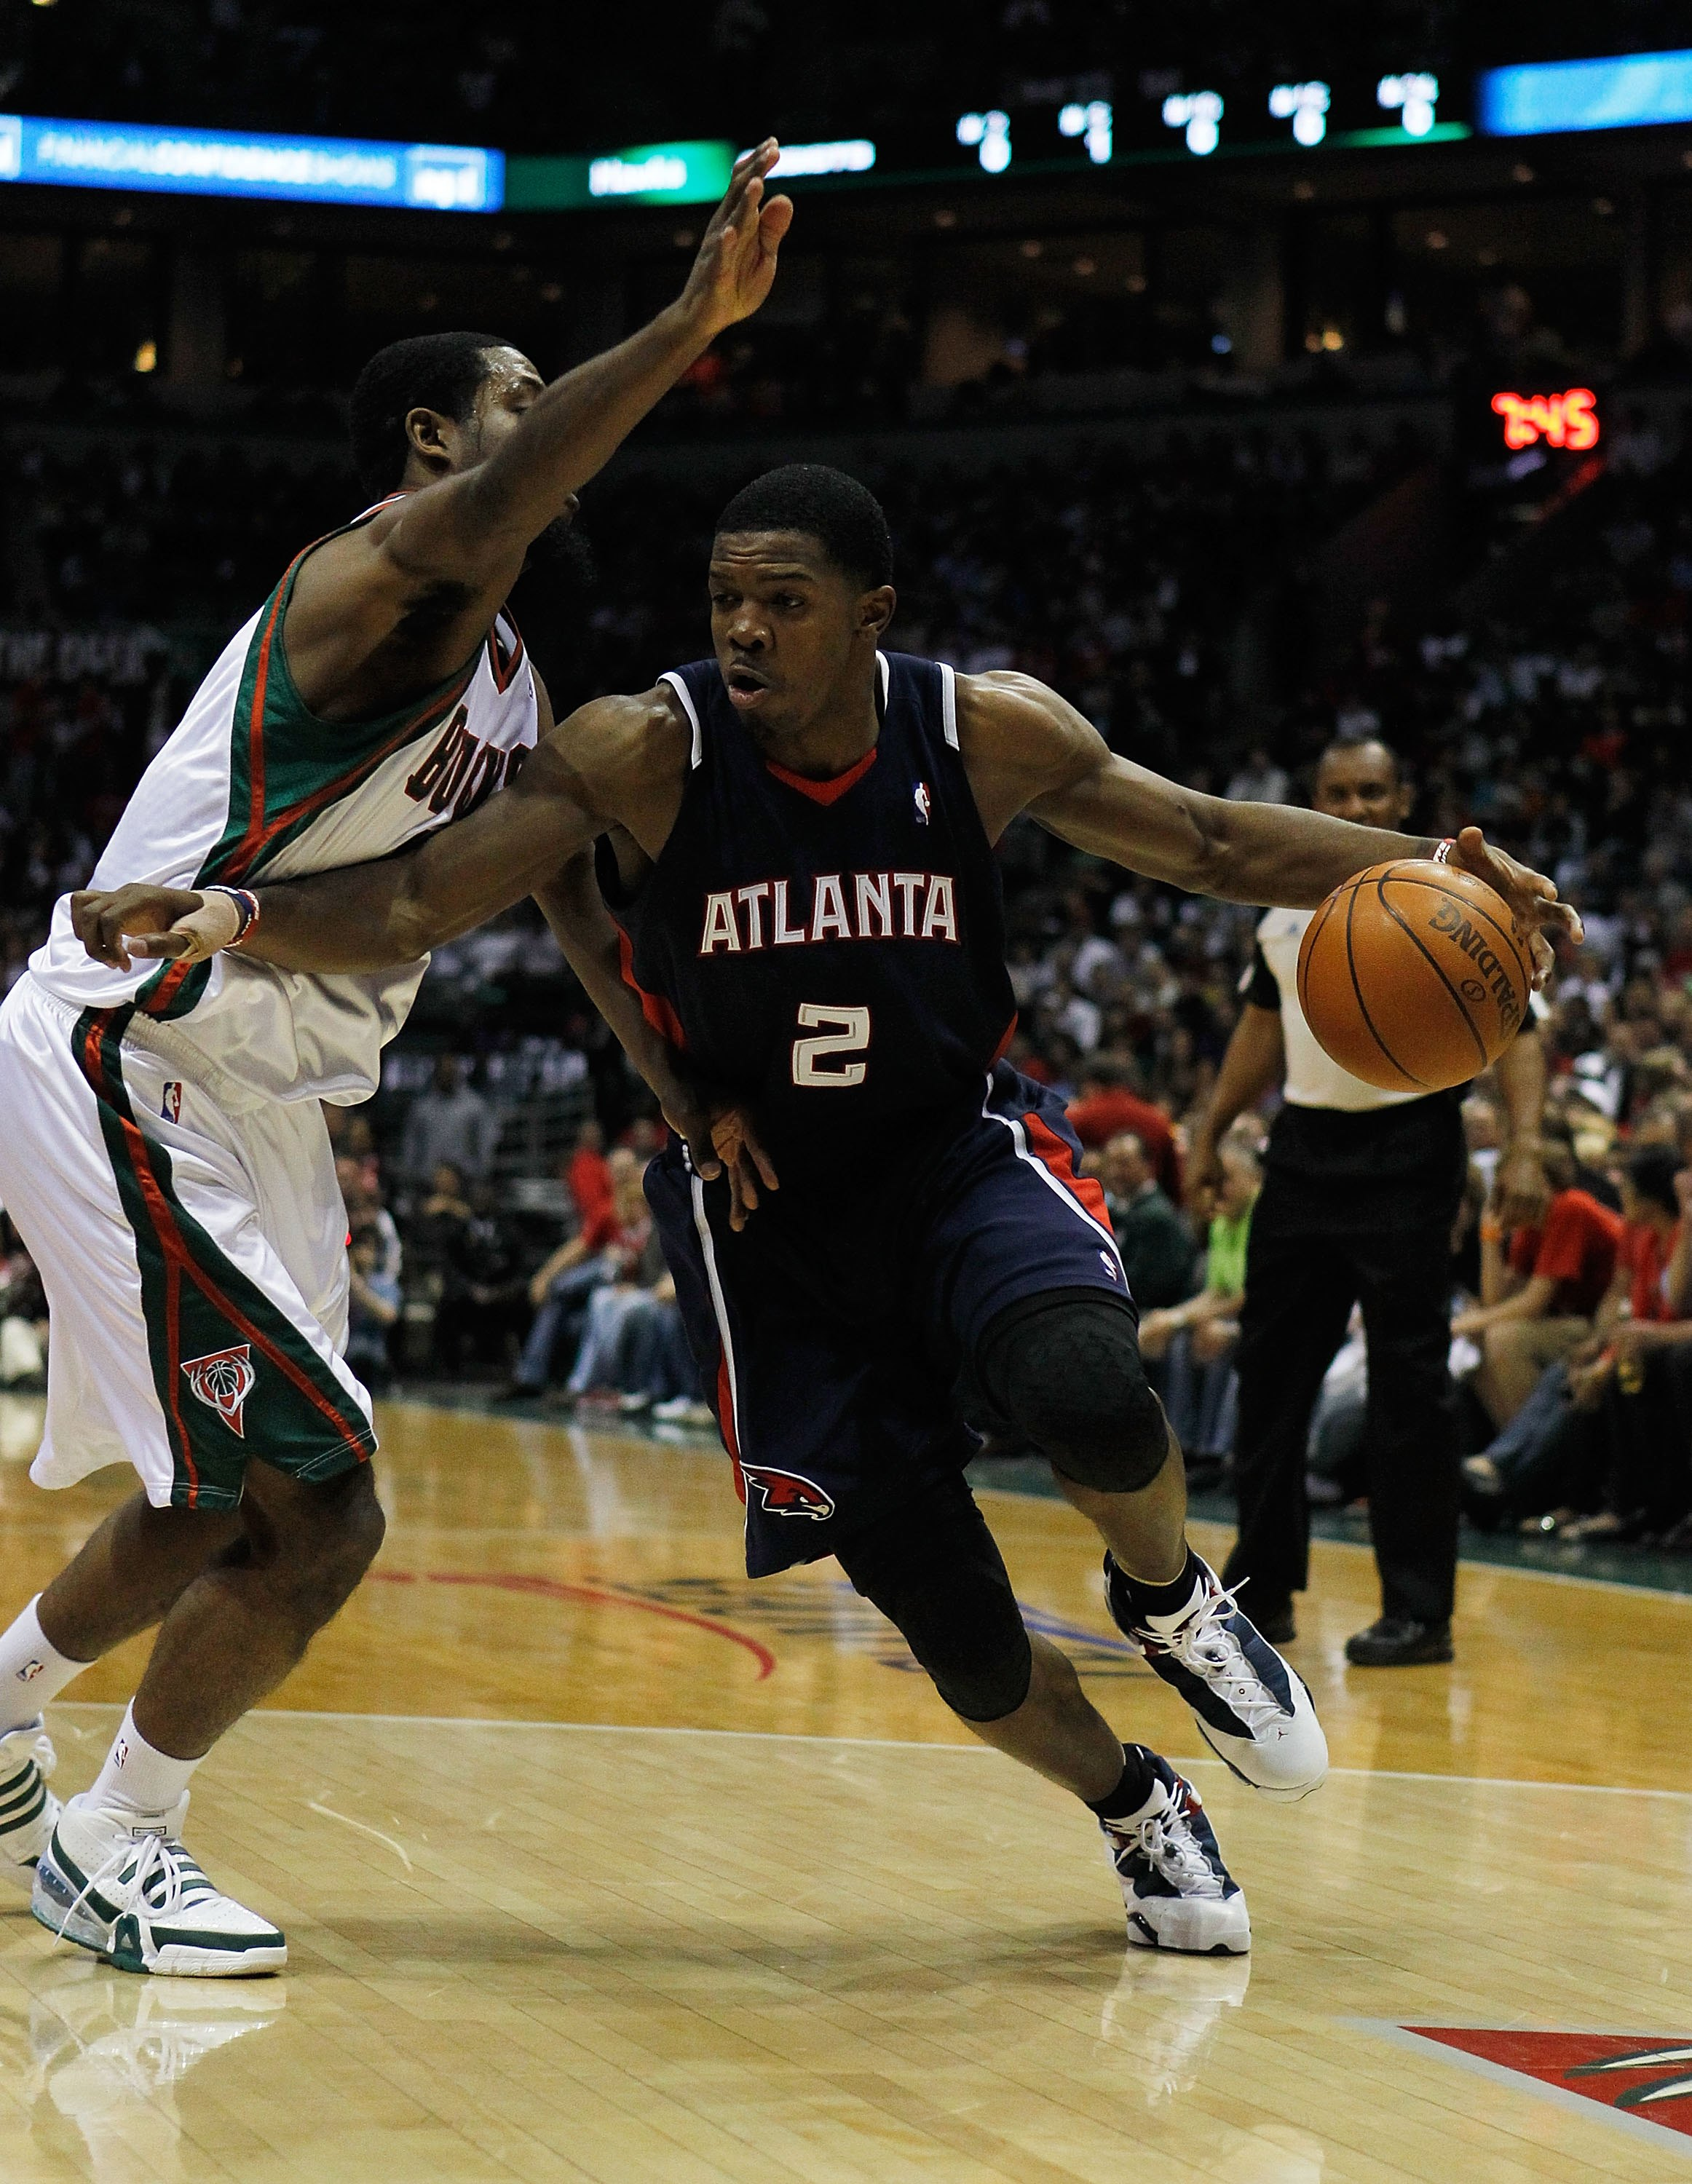 MILWAUKEE - APRIL 26: Joe Johnson #2 of the Atlanta Hawks drives past John Salmons #15 of the Milwaukee Bucks in Game Four of the Eastern Conference Quarterfinals during the 2010 NBA Playoffs at the Bradley Center on April 26, 2010 in Milwaukee, Wisconsin